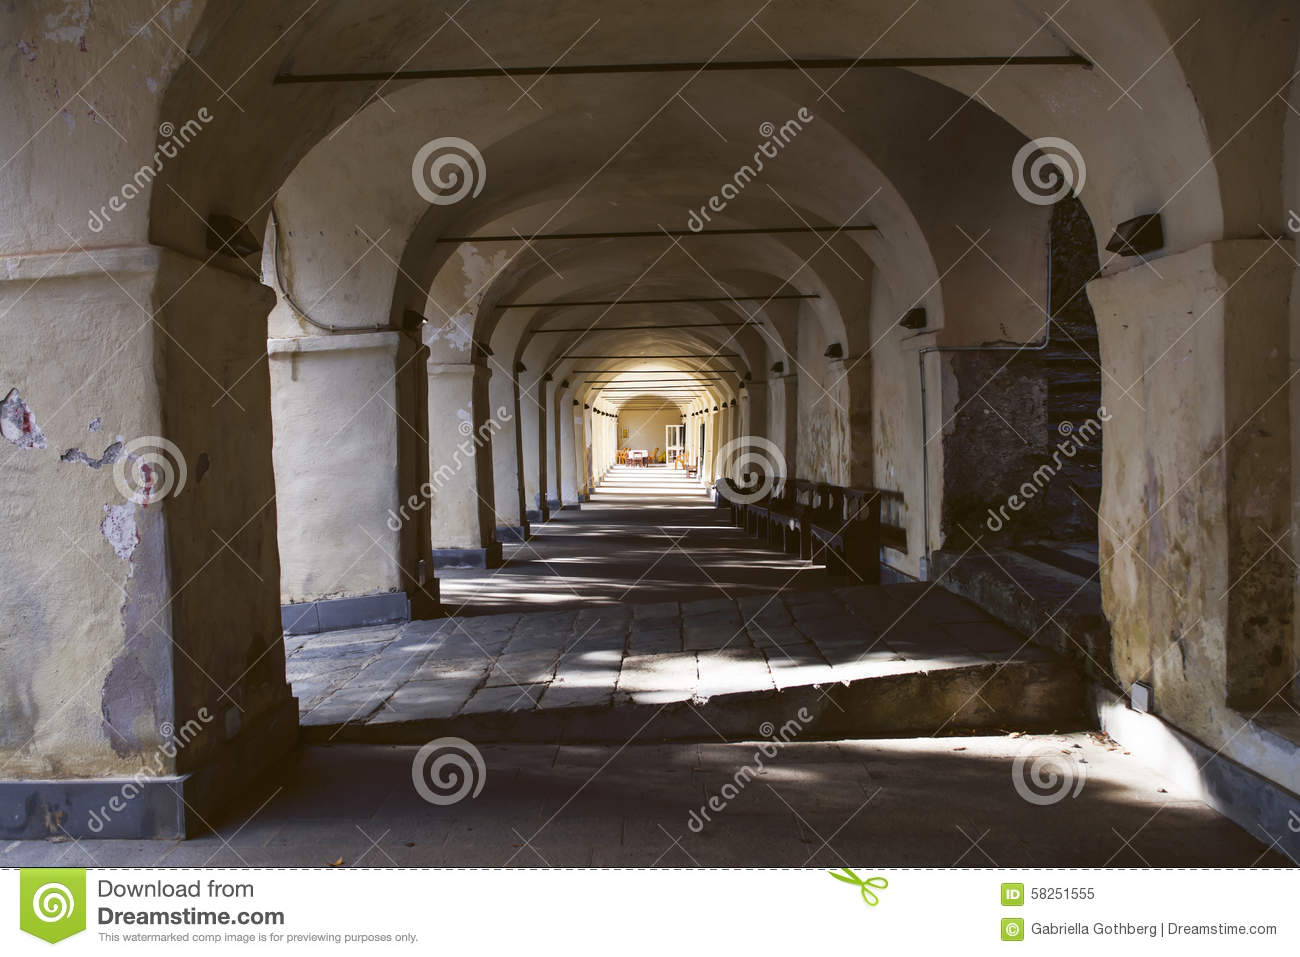 Perspective of stone vaults in old Italian sanctuary